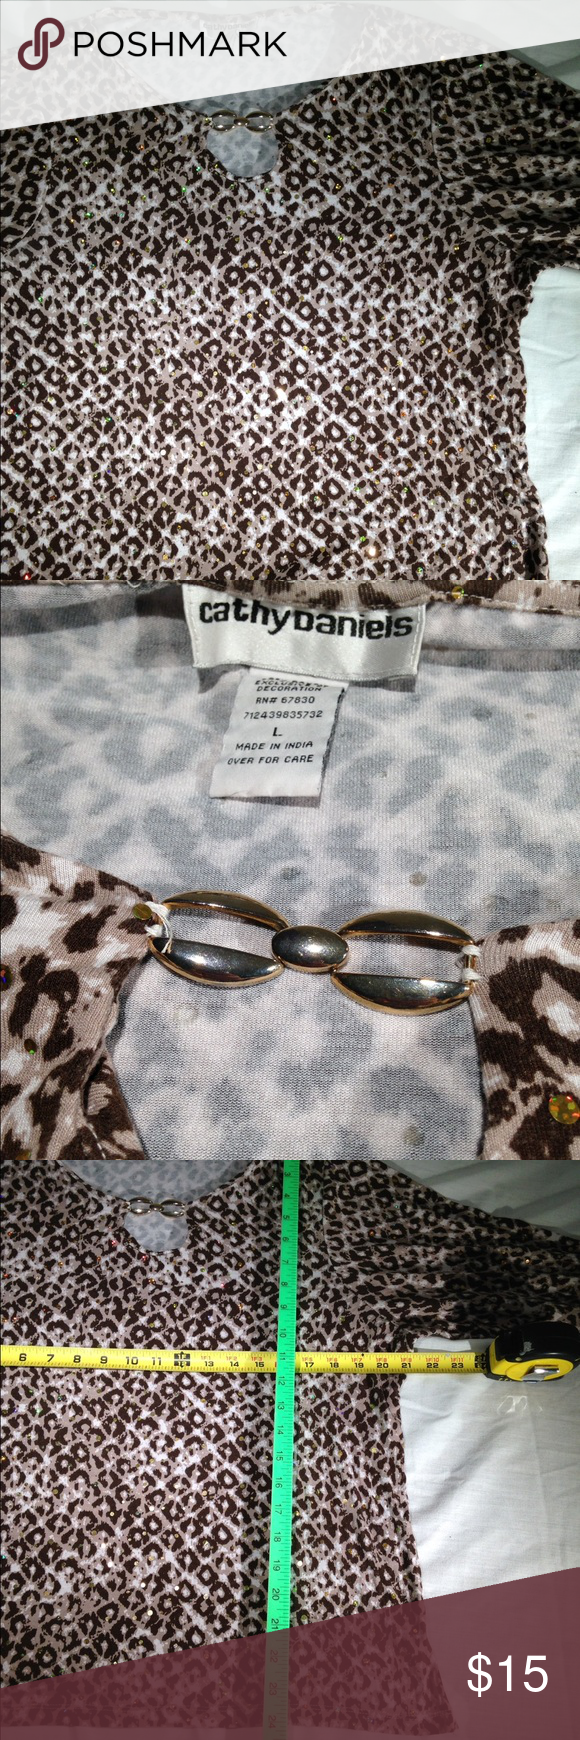 Leopard print Cathy Daniels with crystals Sorry my photos do no justice to the lovely embellishments frond and back. This is a shirt that will not wrinkle. Very comfortable and pretty. cathy daniels  Tops Blouses